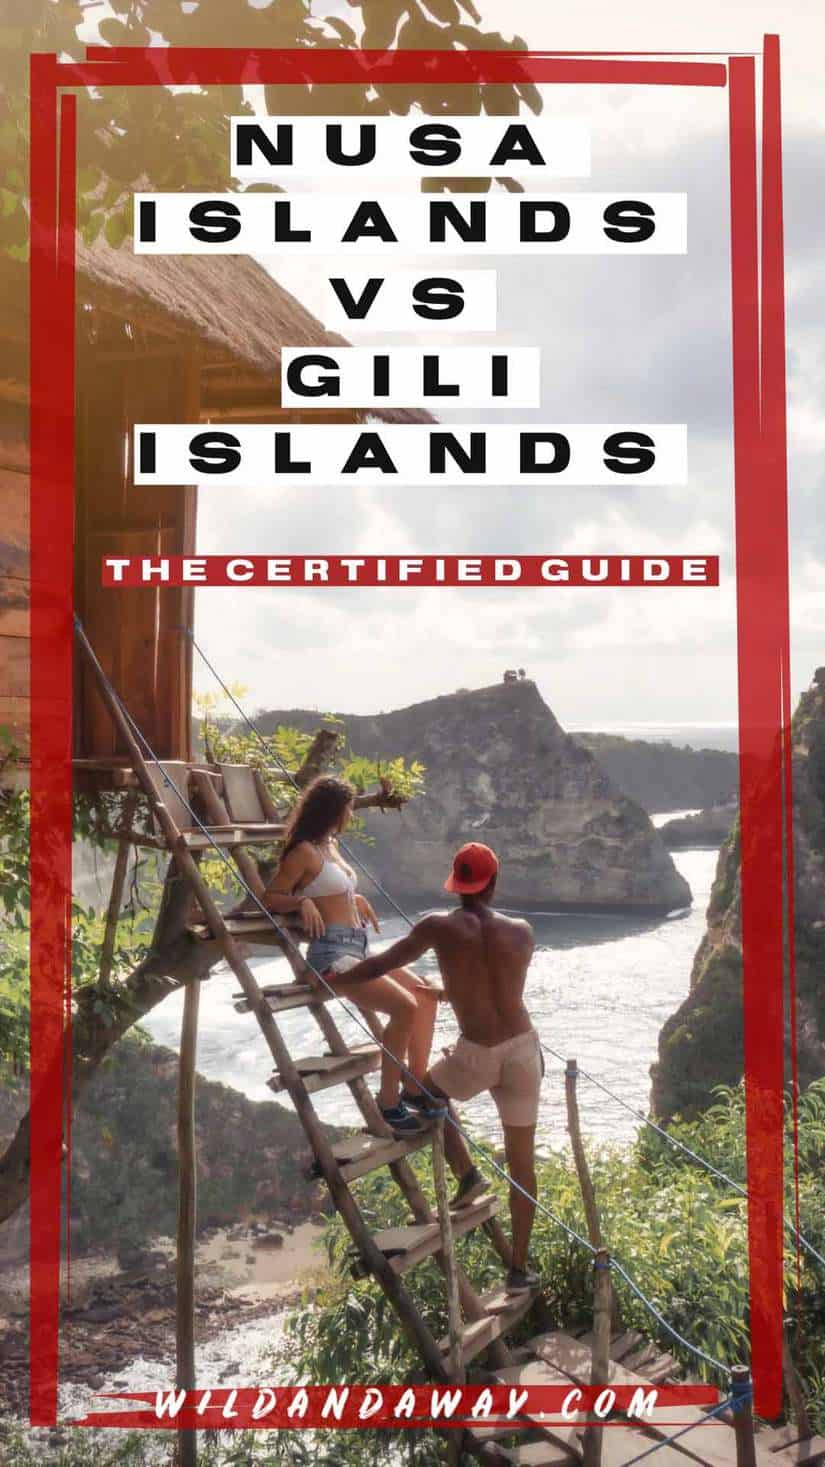 nusa islands or gili islands _ nusa pendia or gili trawangain pinterest